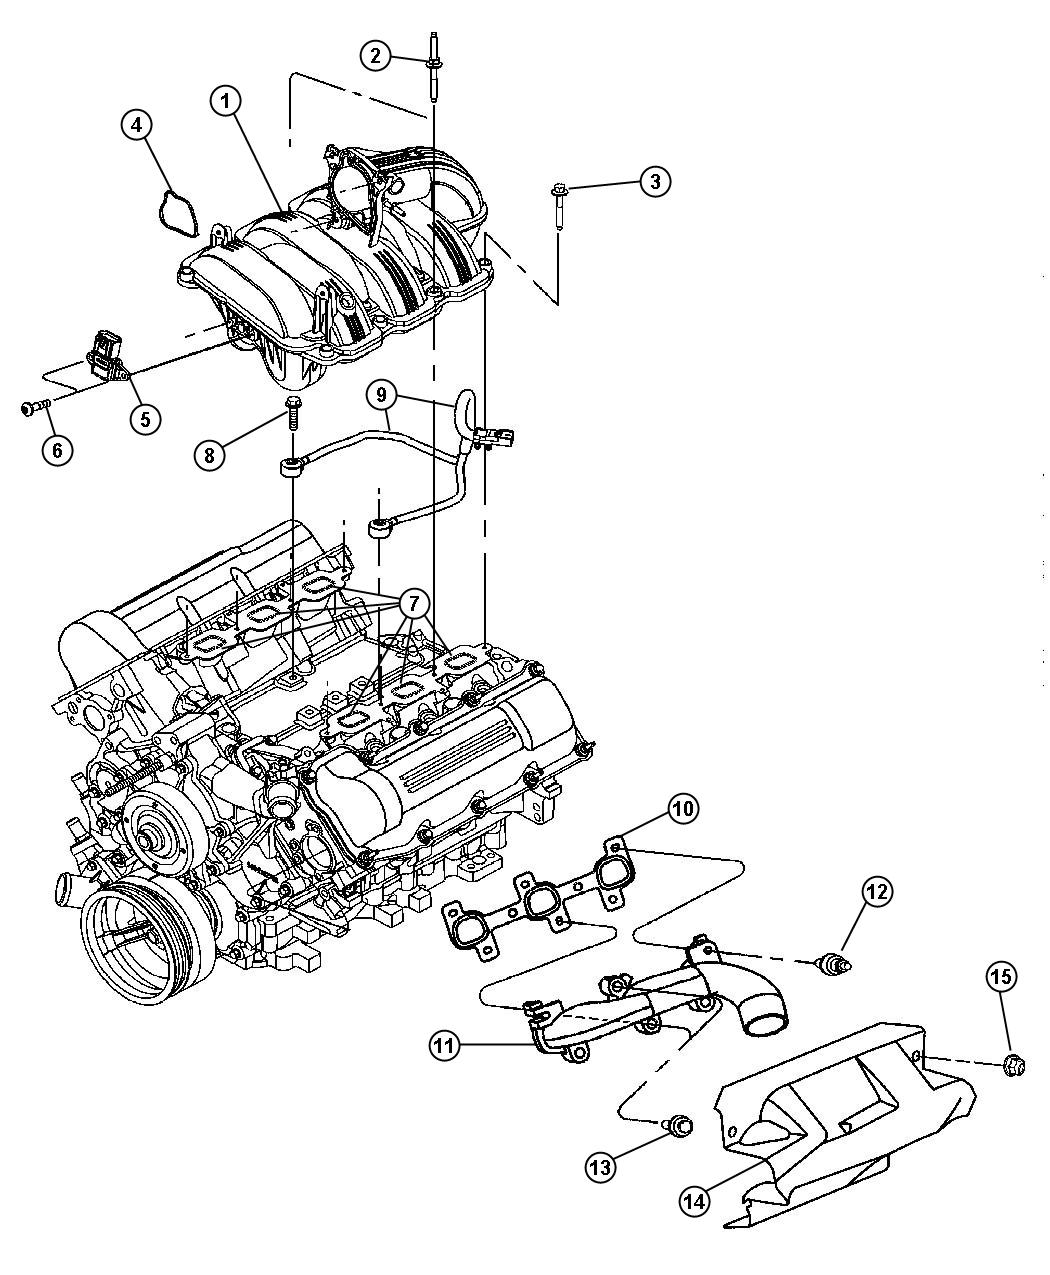 2000 Dodge Dakota Exhaust System Diagram, 2000, Free